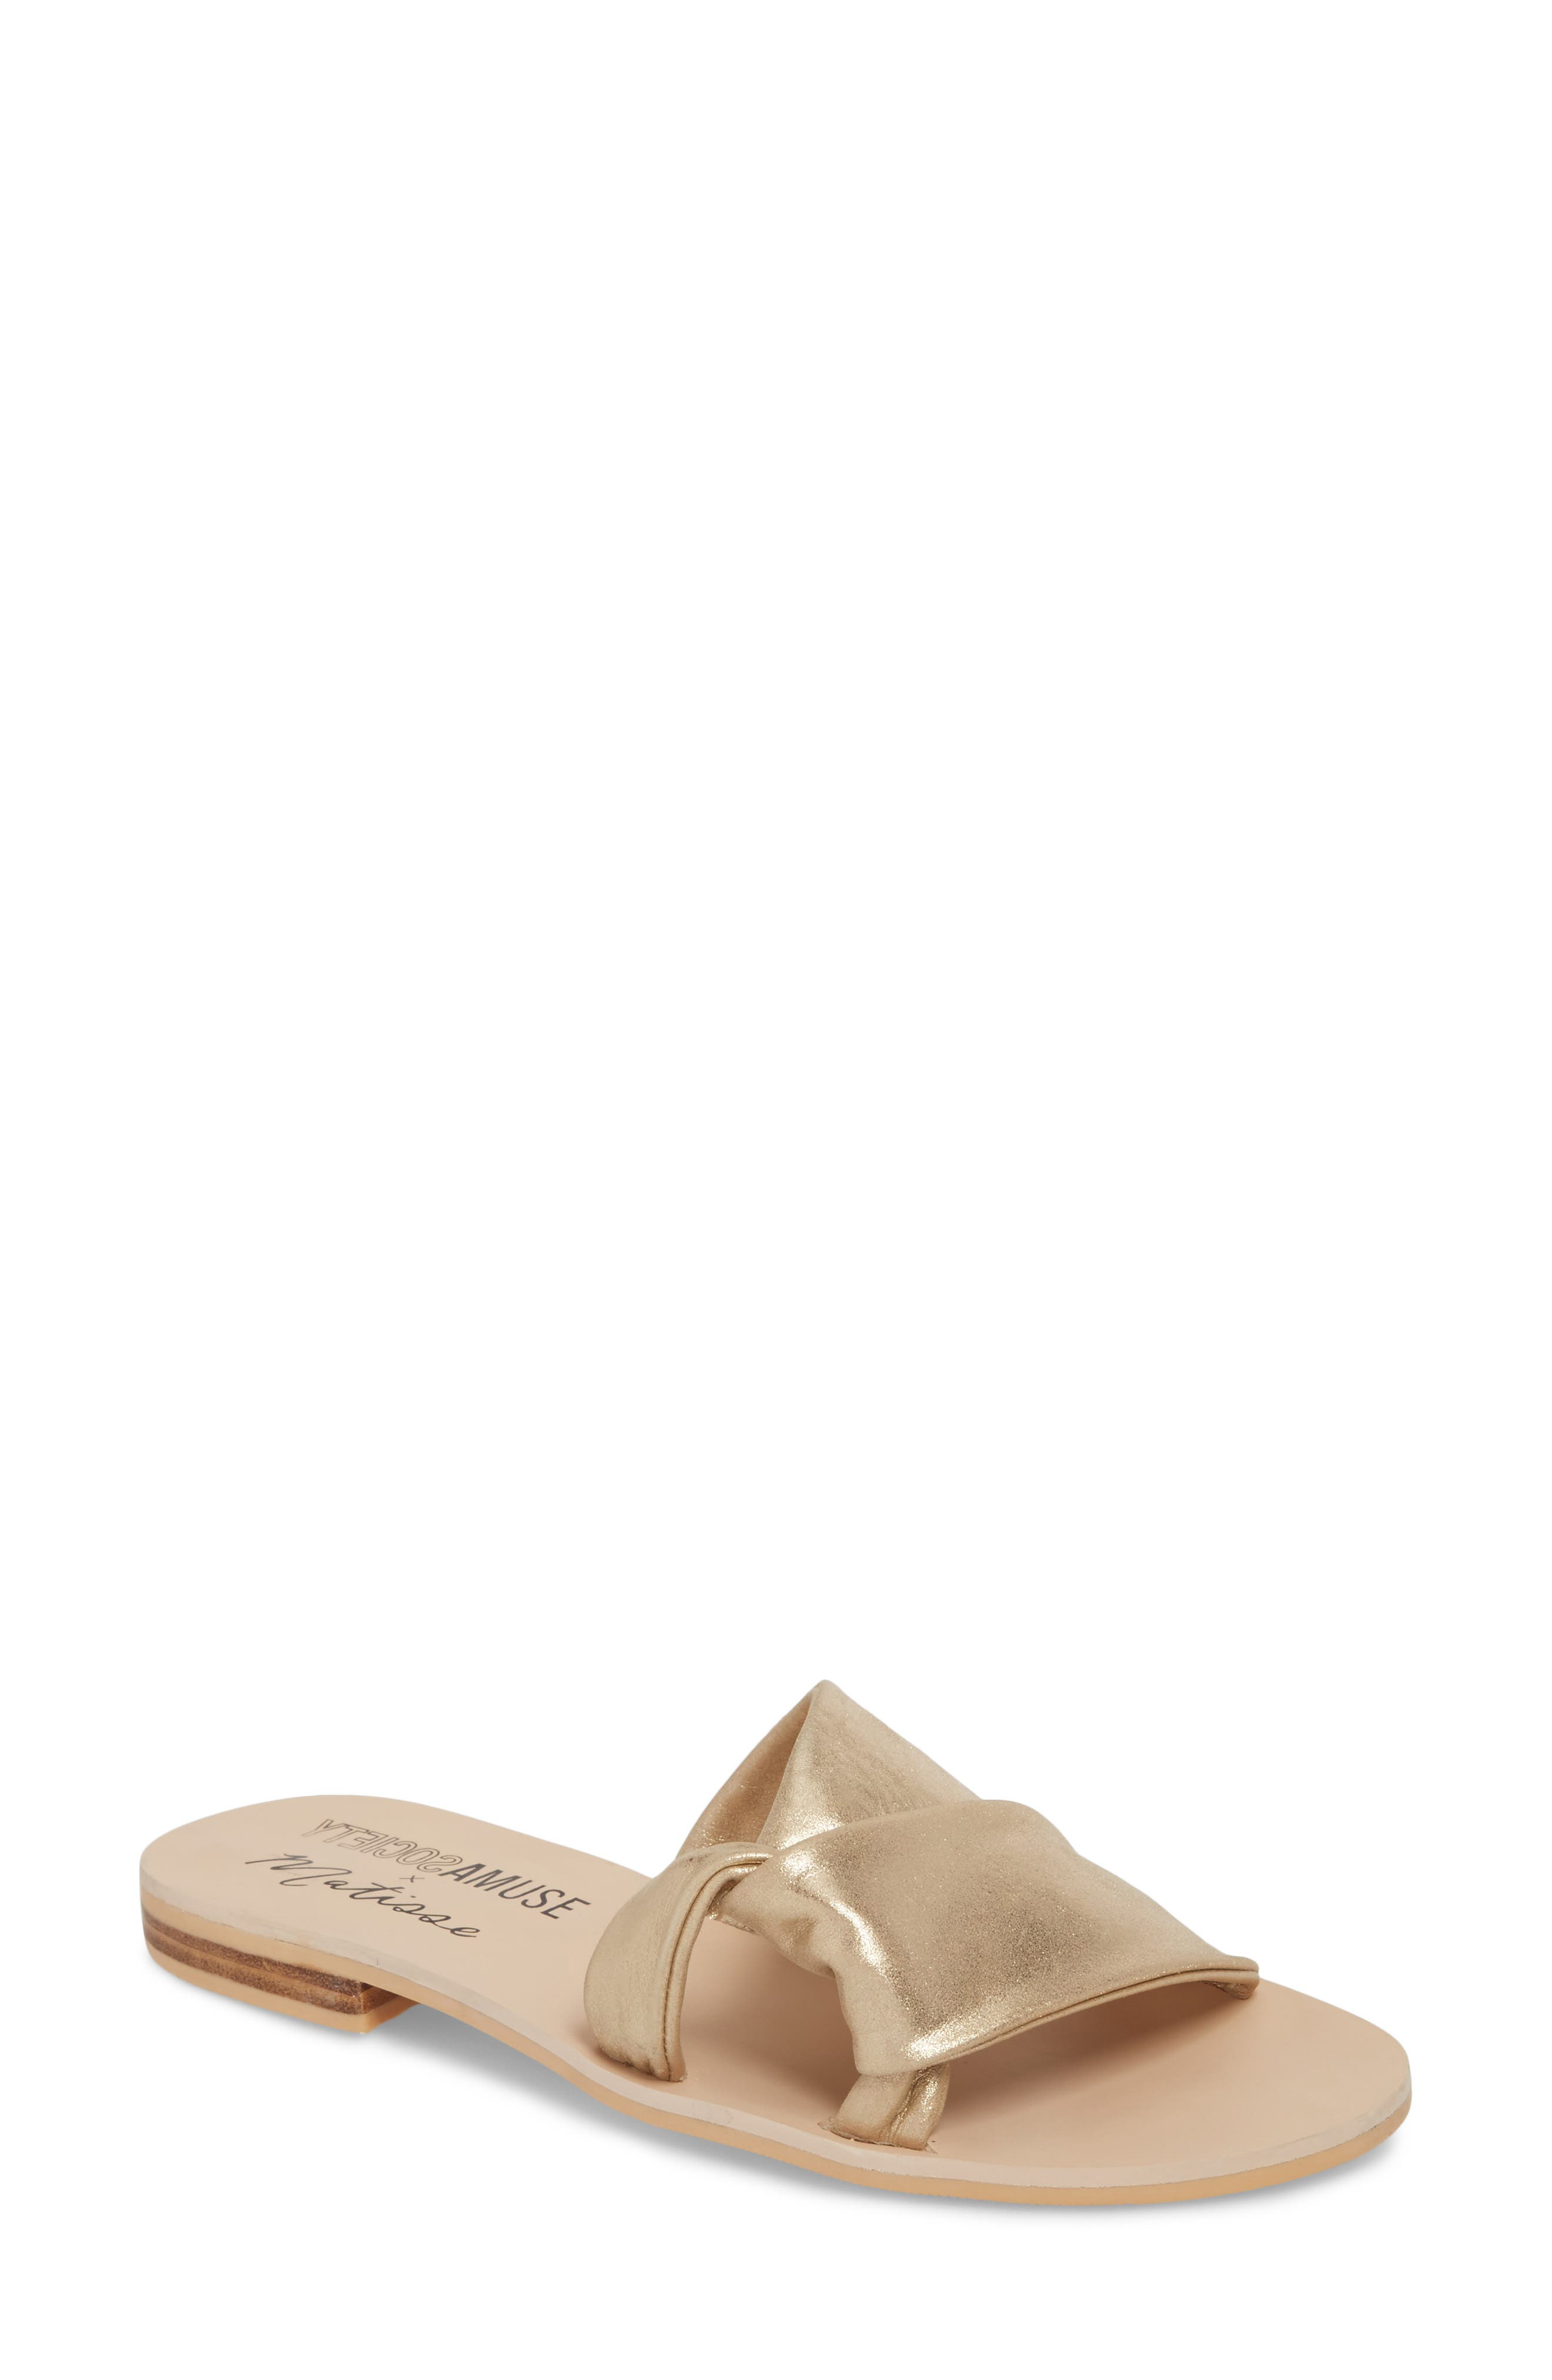 Amuse Society x Matisse Capri Slide Sandal,                         Main,                         color, GOLD LEATHER